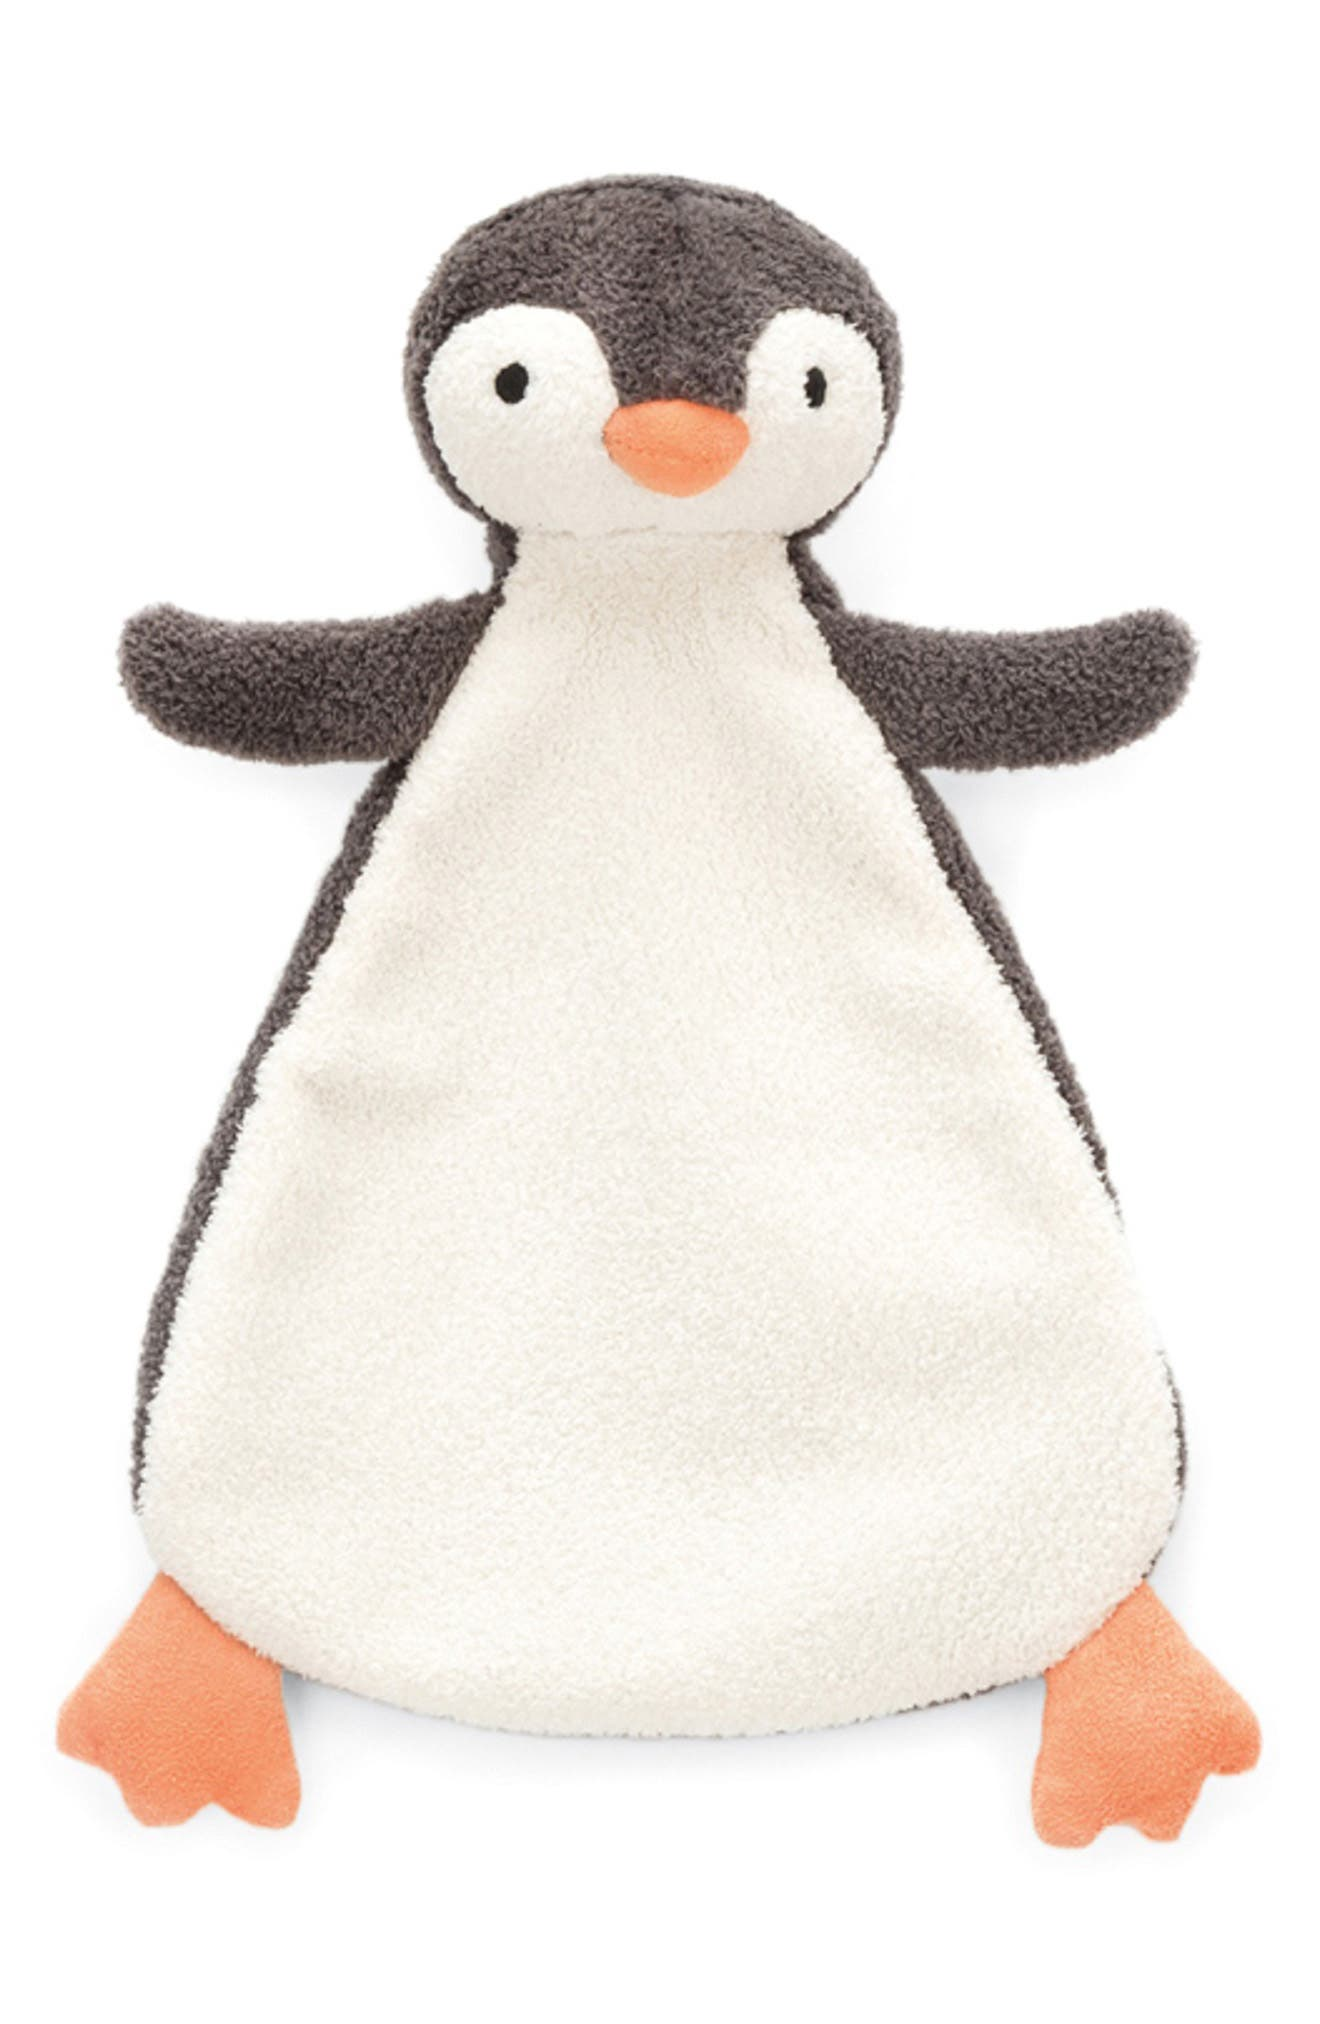 Pippet Penguin Soother Blanket,                             Main thumbnail 1, color,                             BLACK / WHITE